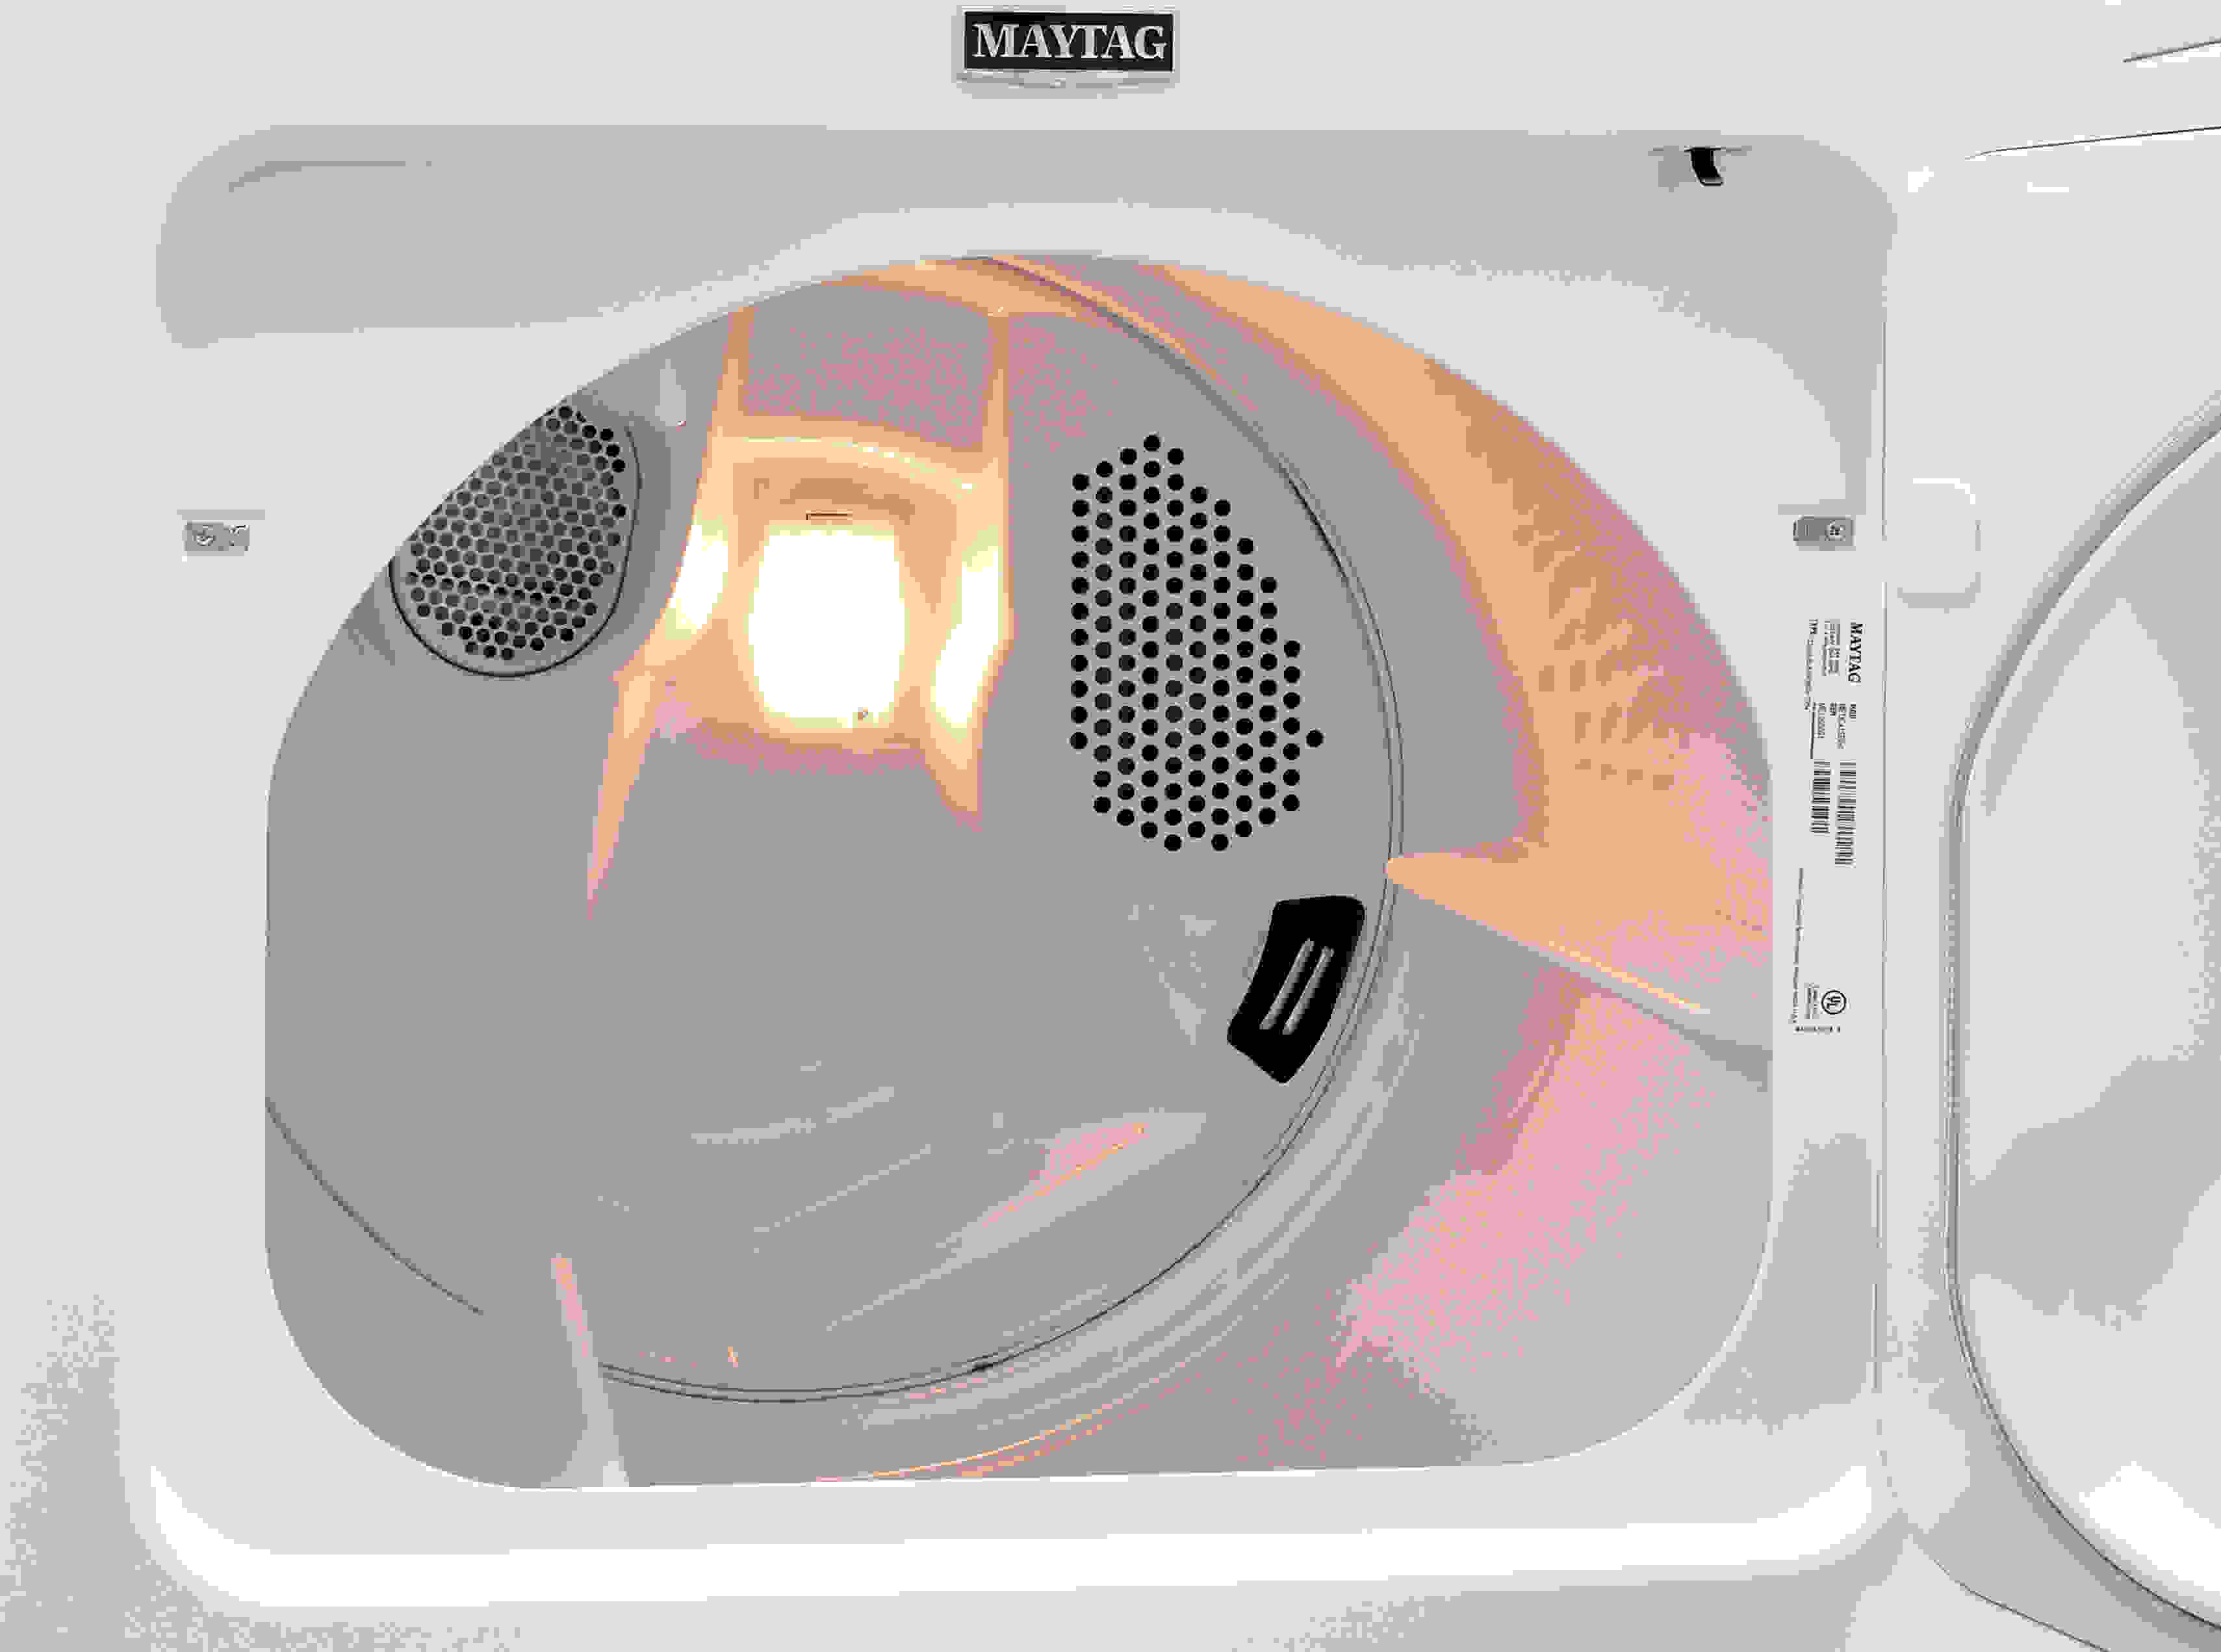 An interior light is always an unexpected surprise with budget dryers like the Maytag Centennial MEDC415EW.